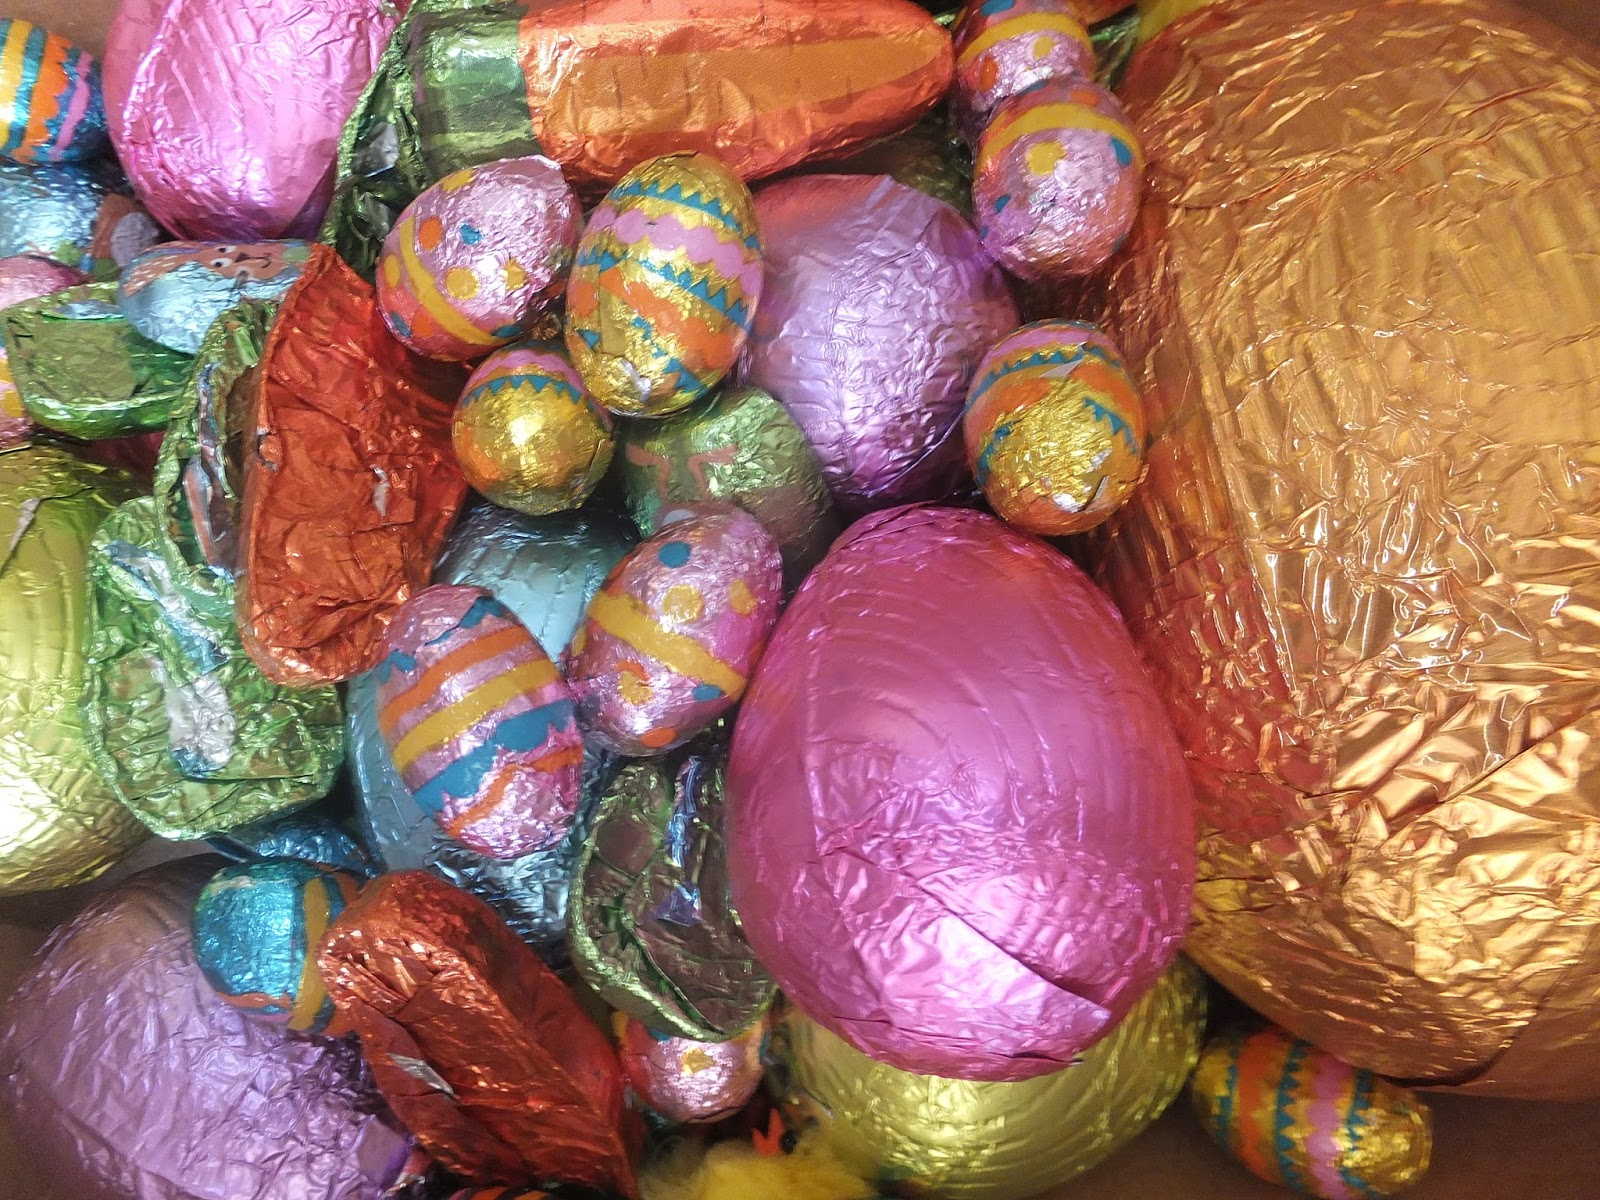 Our beach easter egg hunt with tesco tescoeaster are you in the mood for easter yet got all your eggs planned the grand hunt started baking no dont fret if you think the easter bunny might need a negle Gallery